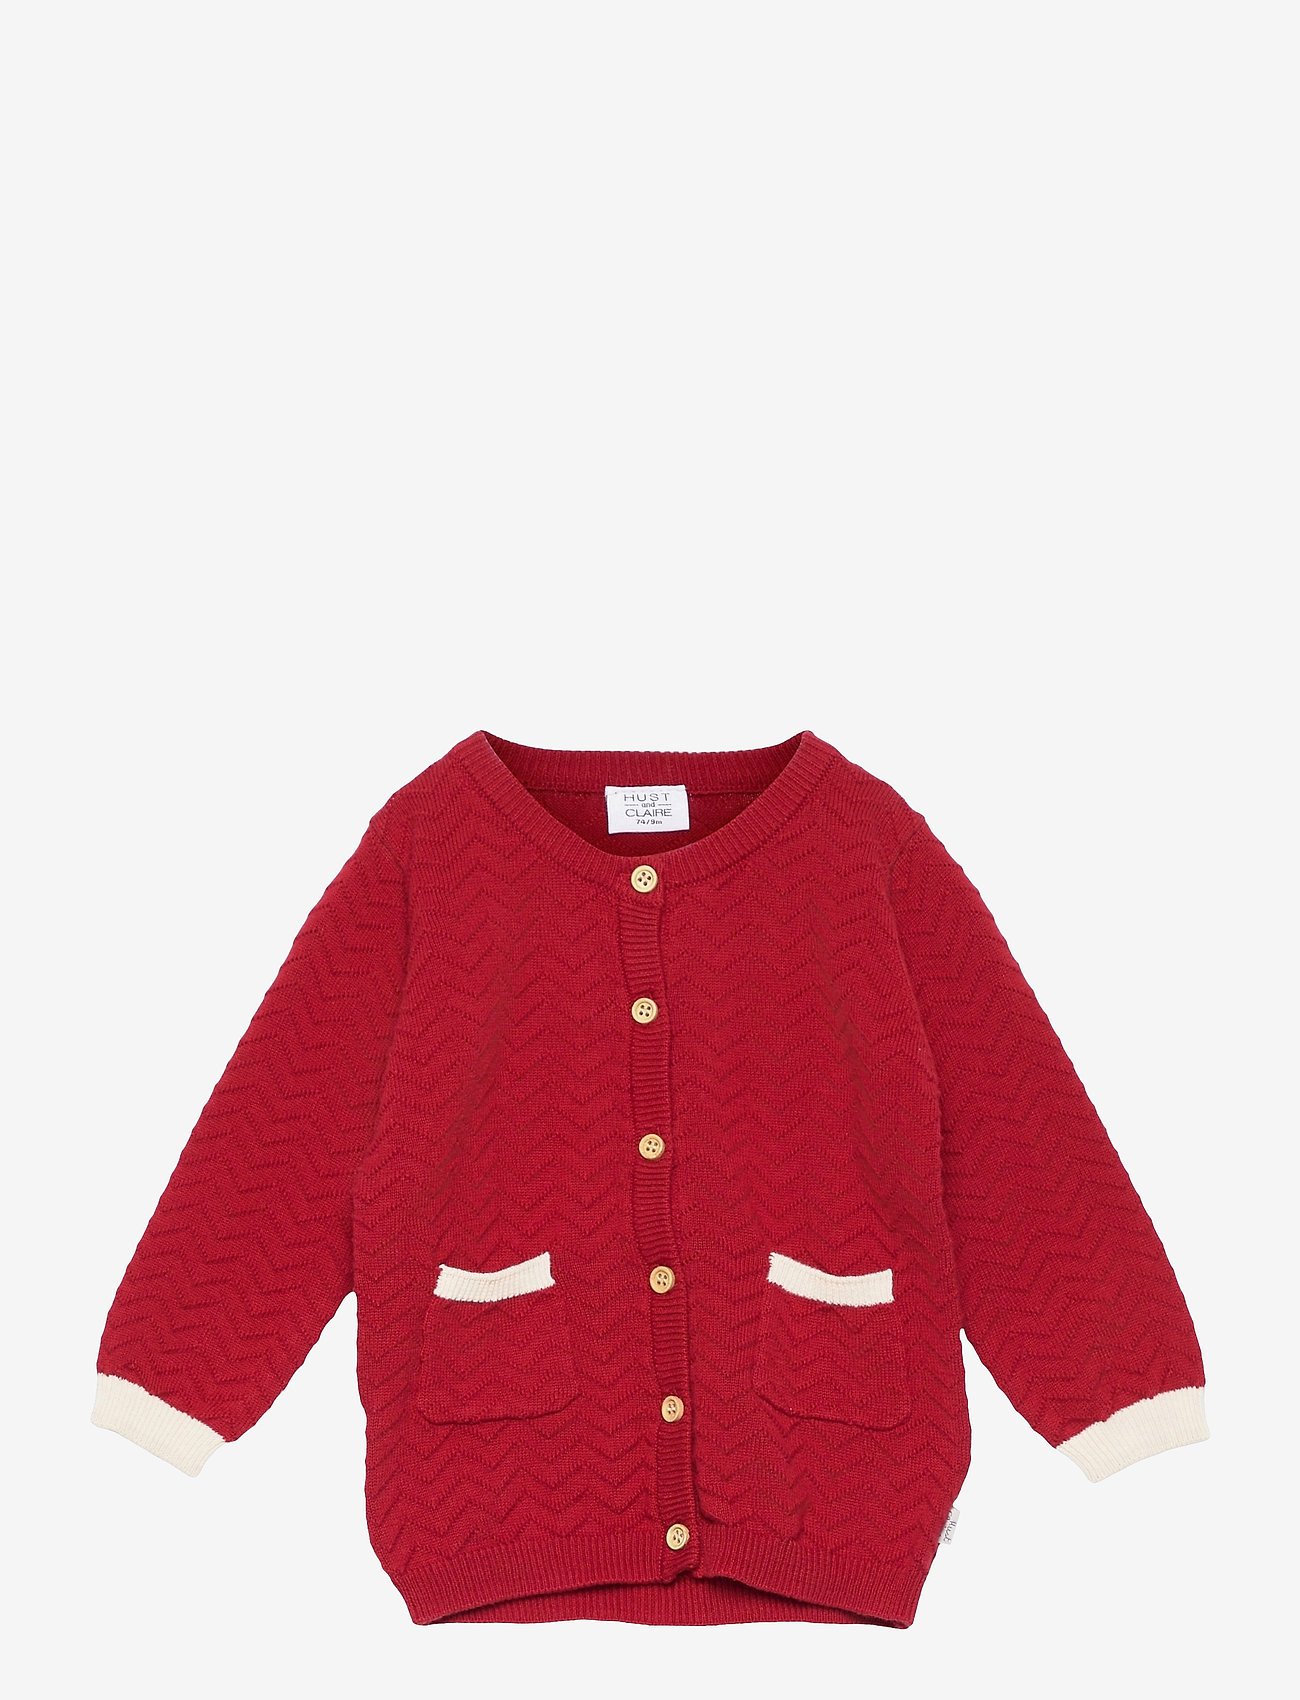 Hust & Claire - Cammi - Cardigan - gilets - rio red - 0